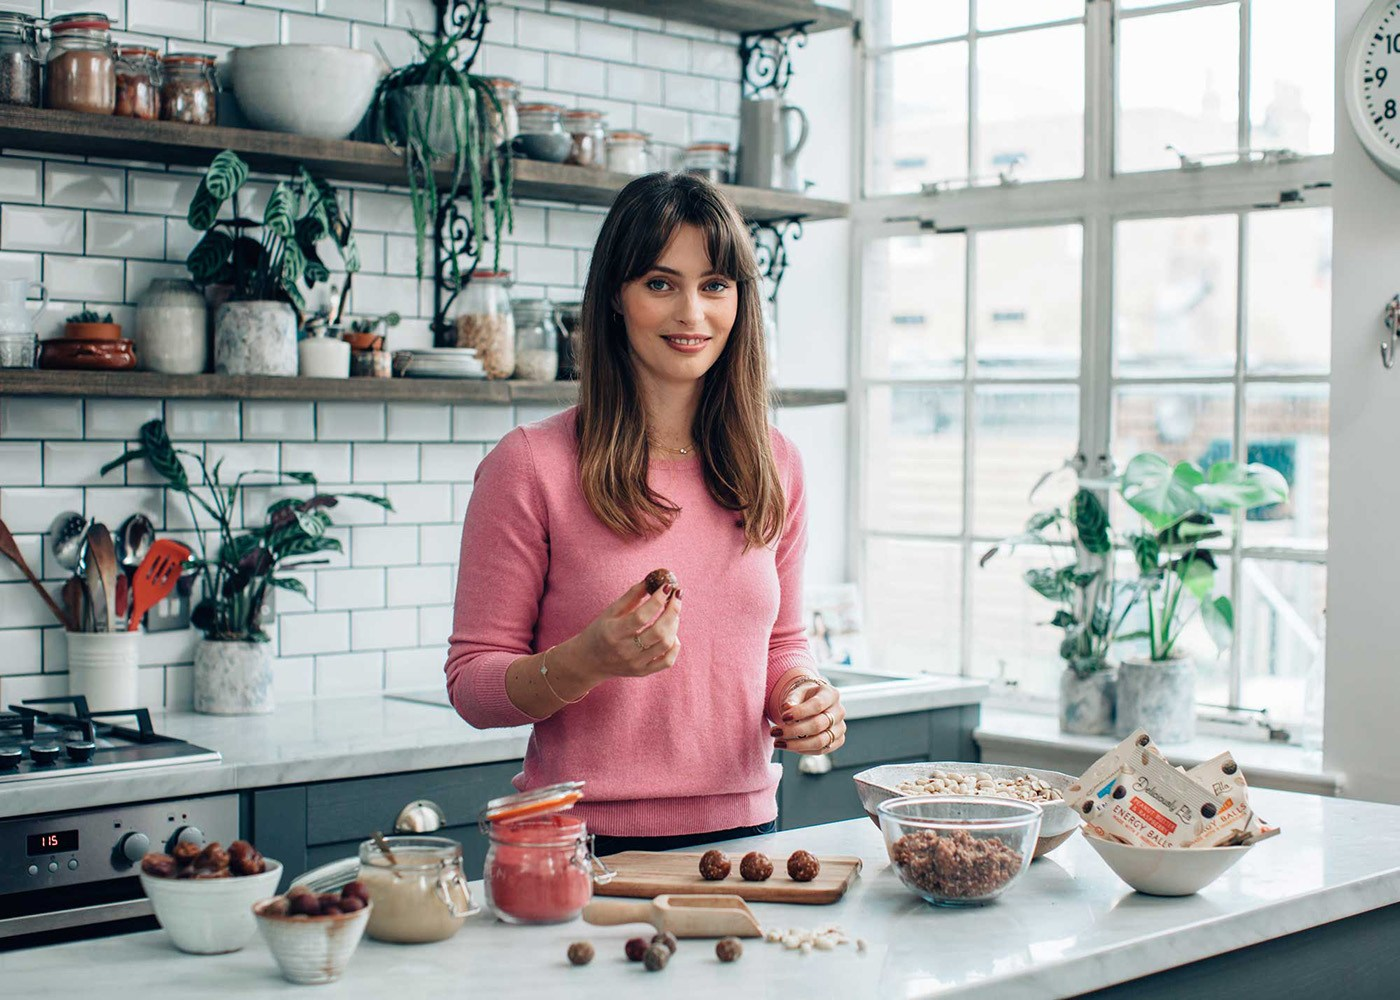 blogger, deliciously ella in kitchen